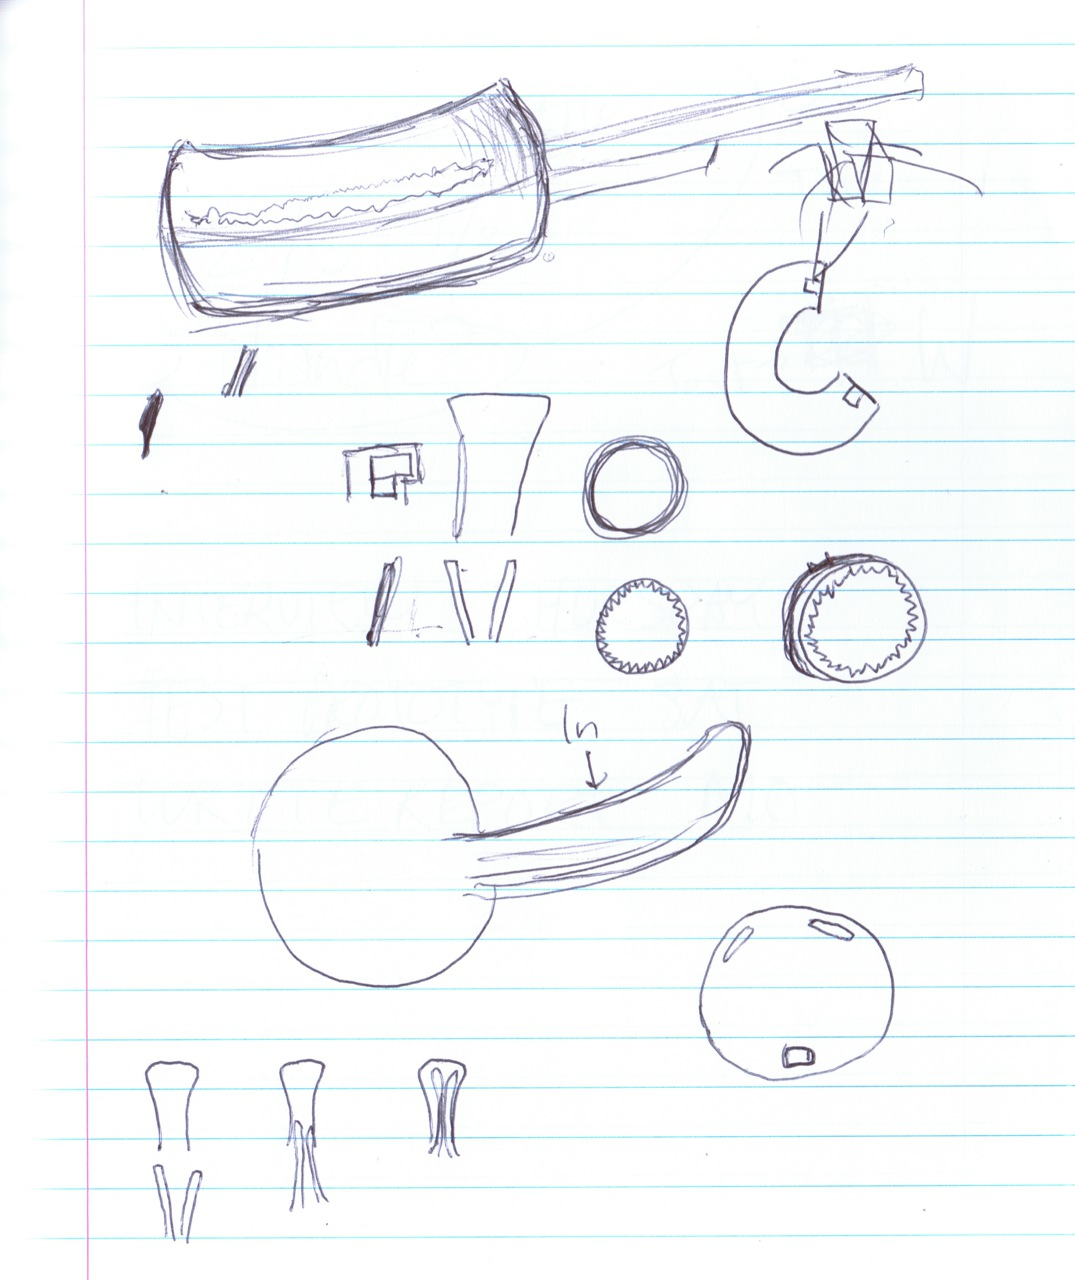 various sketches of locking mechanisms